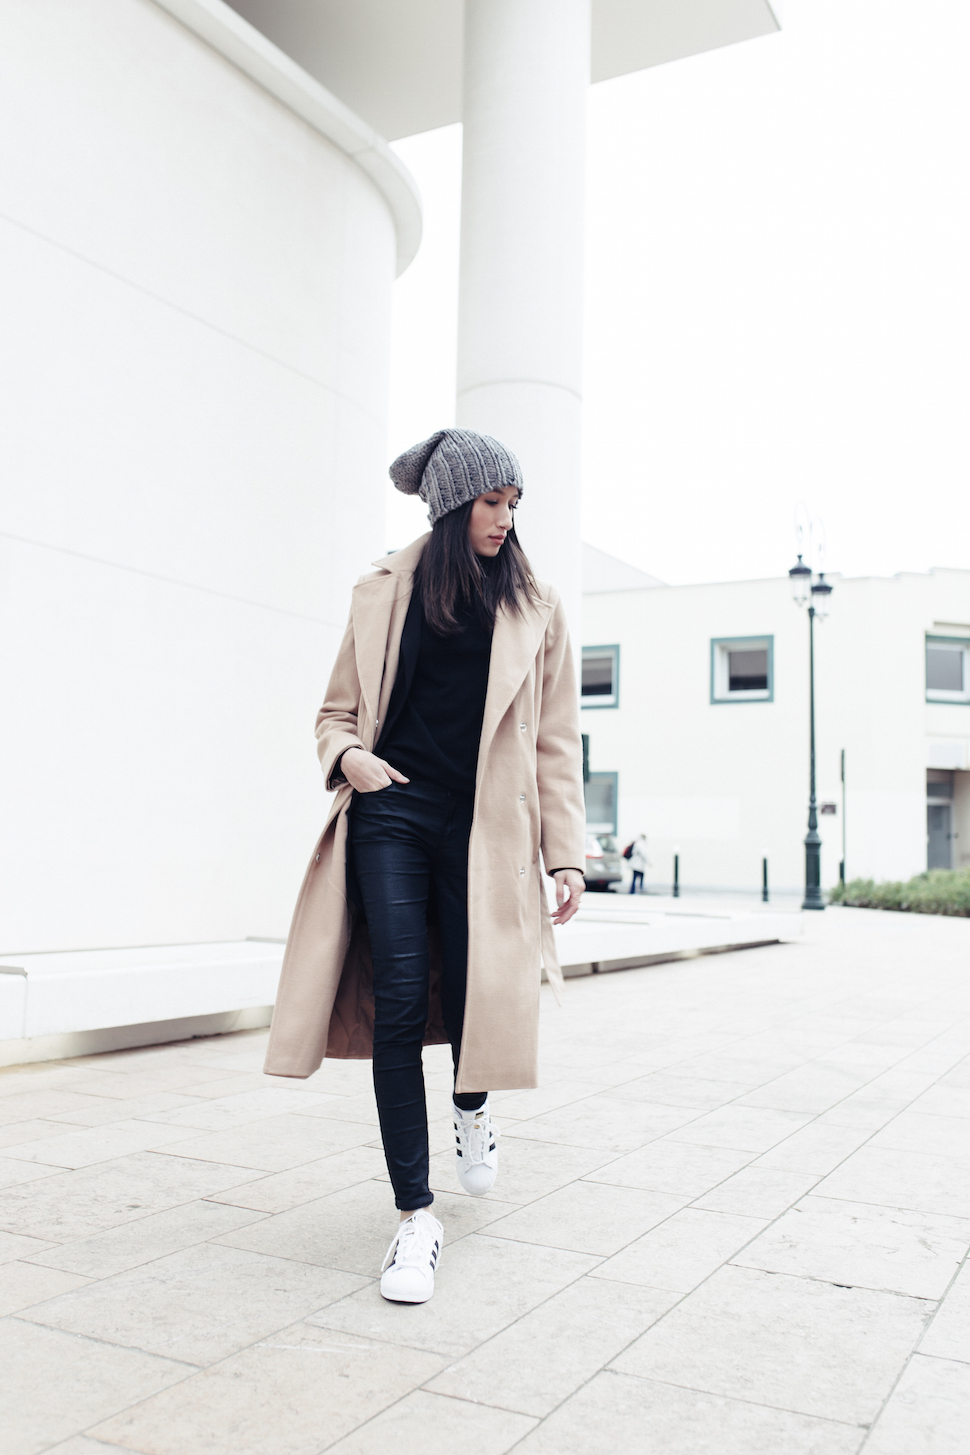 Get inspired and try Alexandra Guerain's winter style by wearing leather leggings with retro sneakers and a beige maxi coat. Throw in a cute knitted beanie to get these cool and casual vibes. Coat: Clockhouse, Blazer/Jeans/Shoes- ICl.